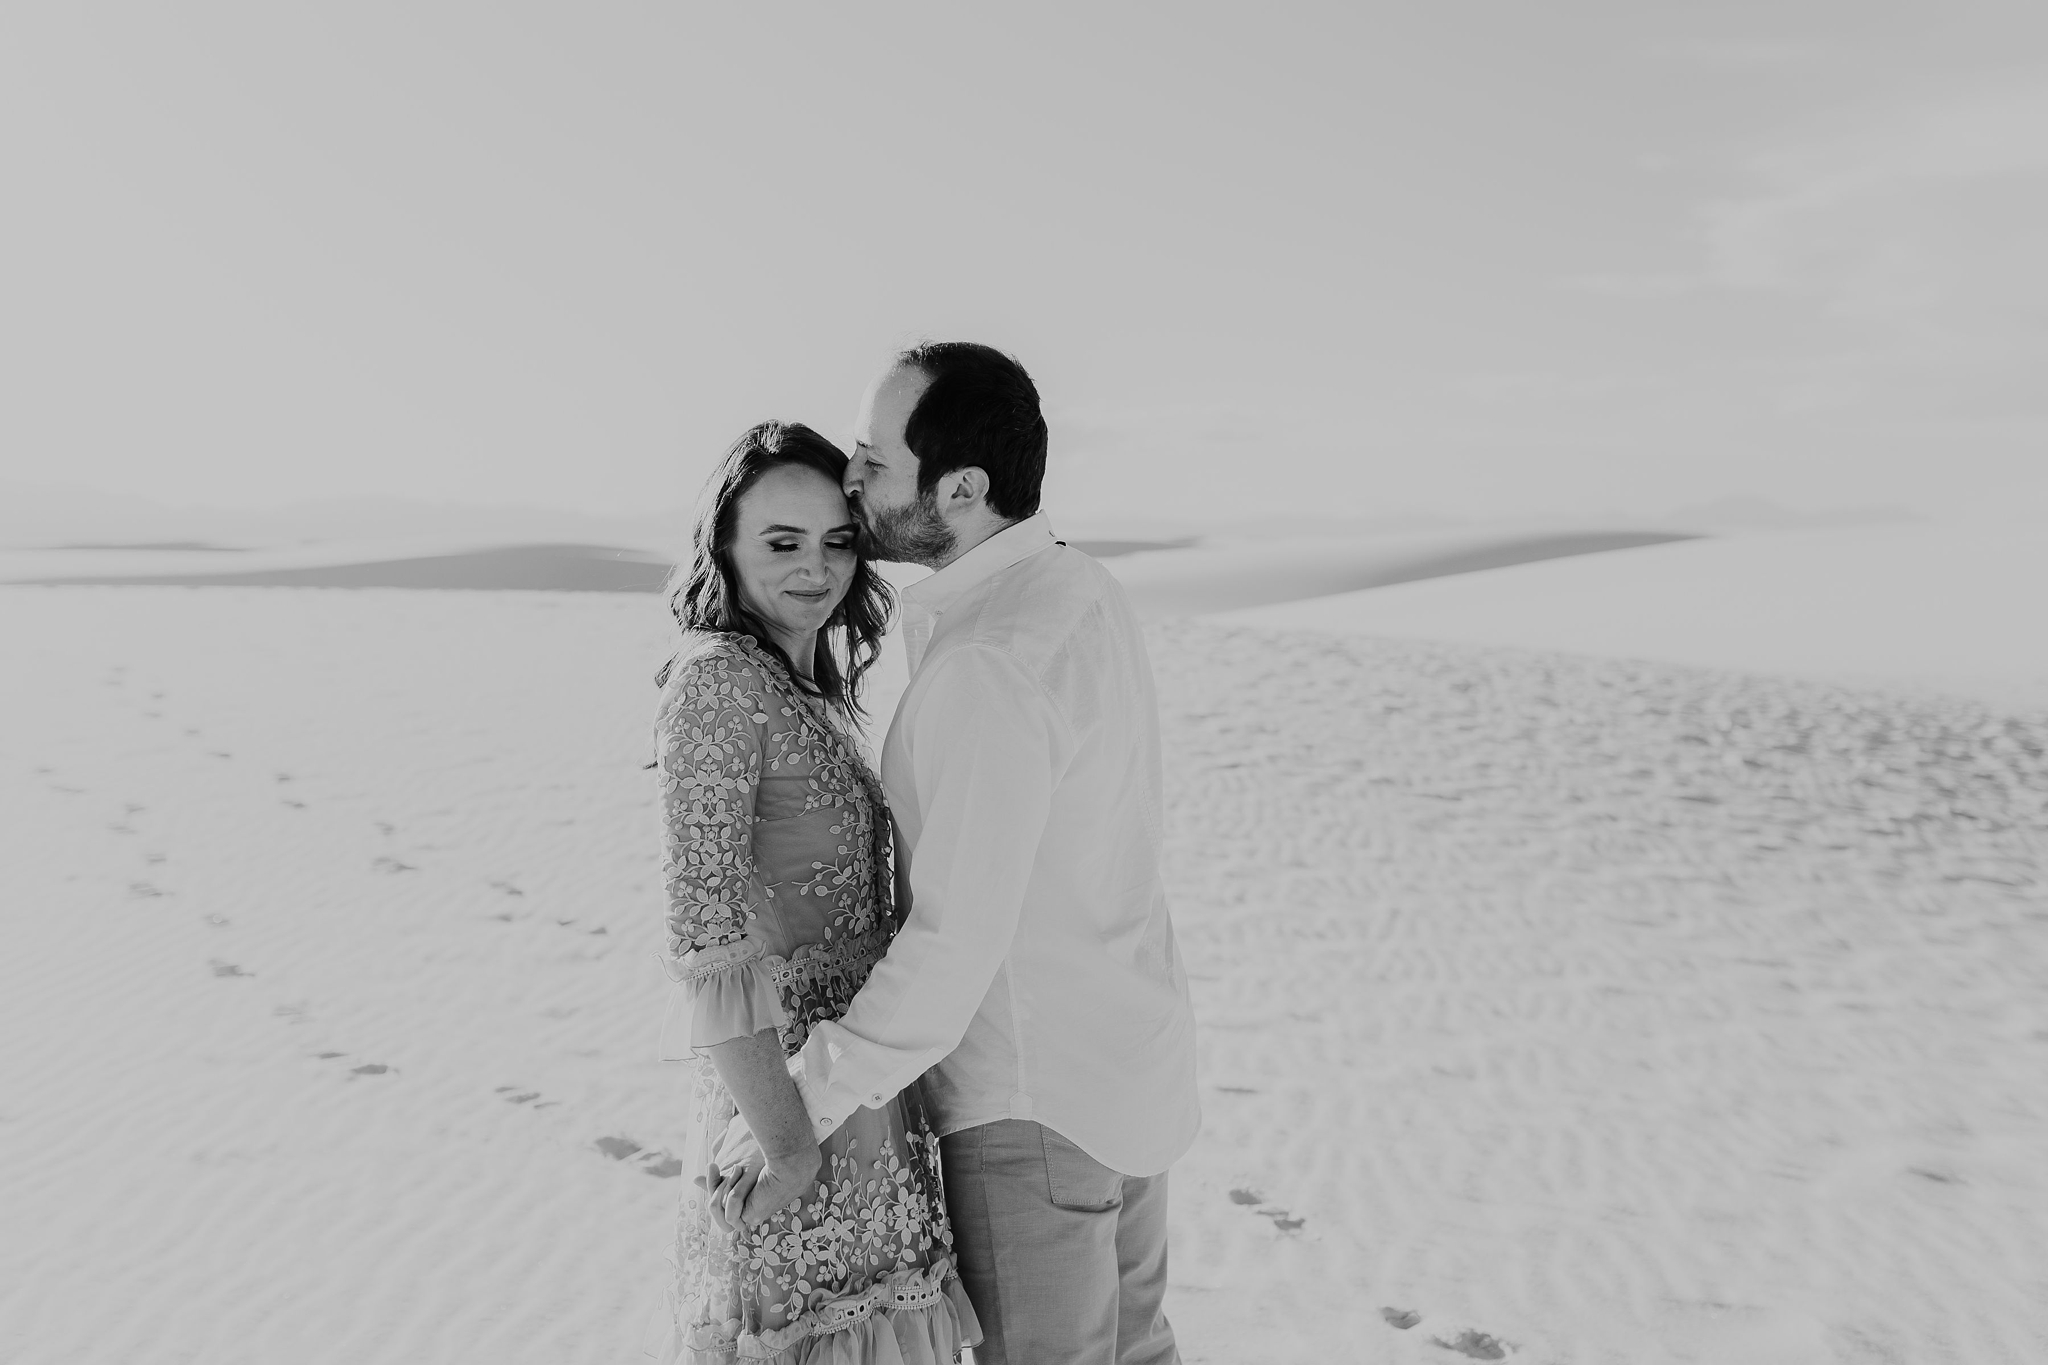 Alicia+lucia+photography+-+albuquerque+wedding+photographer+-+santa+fe+wedding+photography+-+new+mexico+wedding+photographer+-+new+mexico+wedding+-+new+mexico+engagement+-+white+sands+engagement+-+white+sands+national+monument_0014.jpg